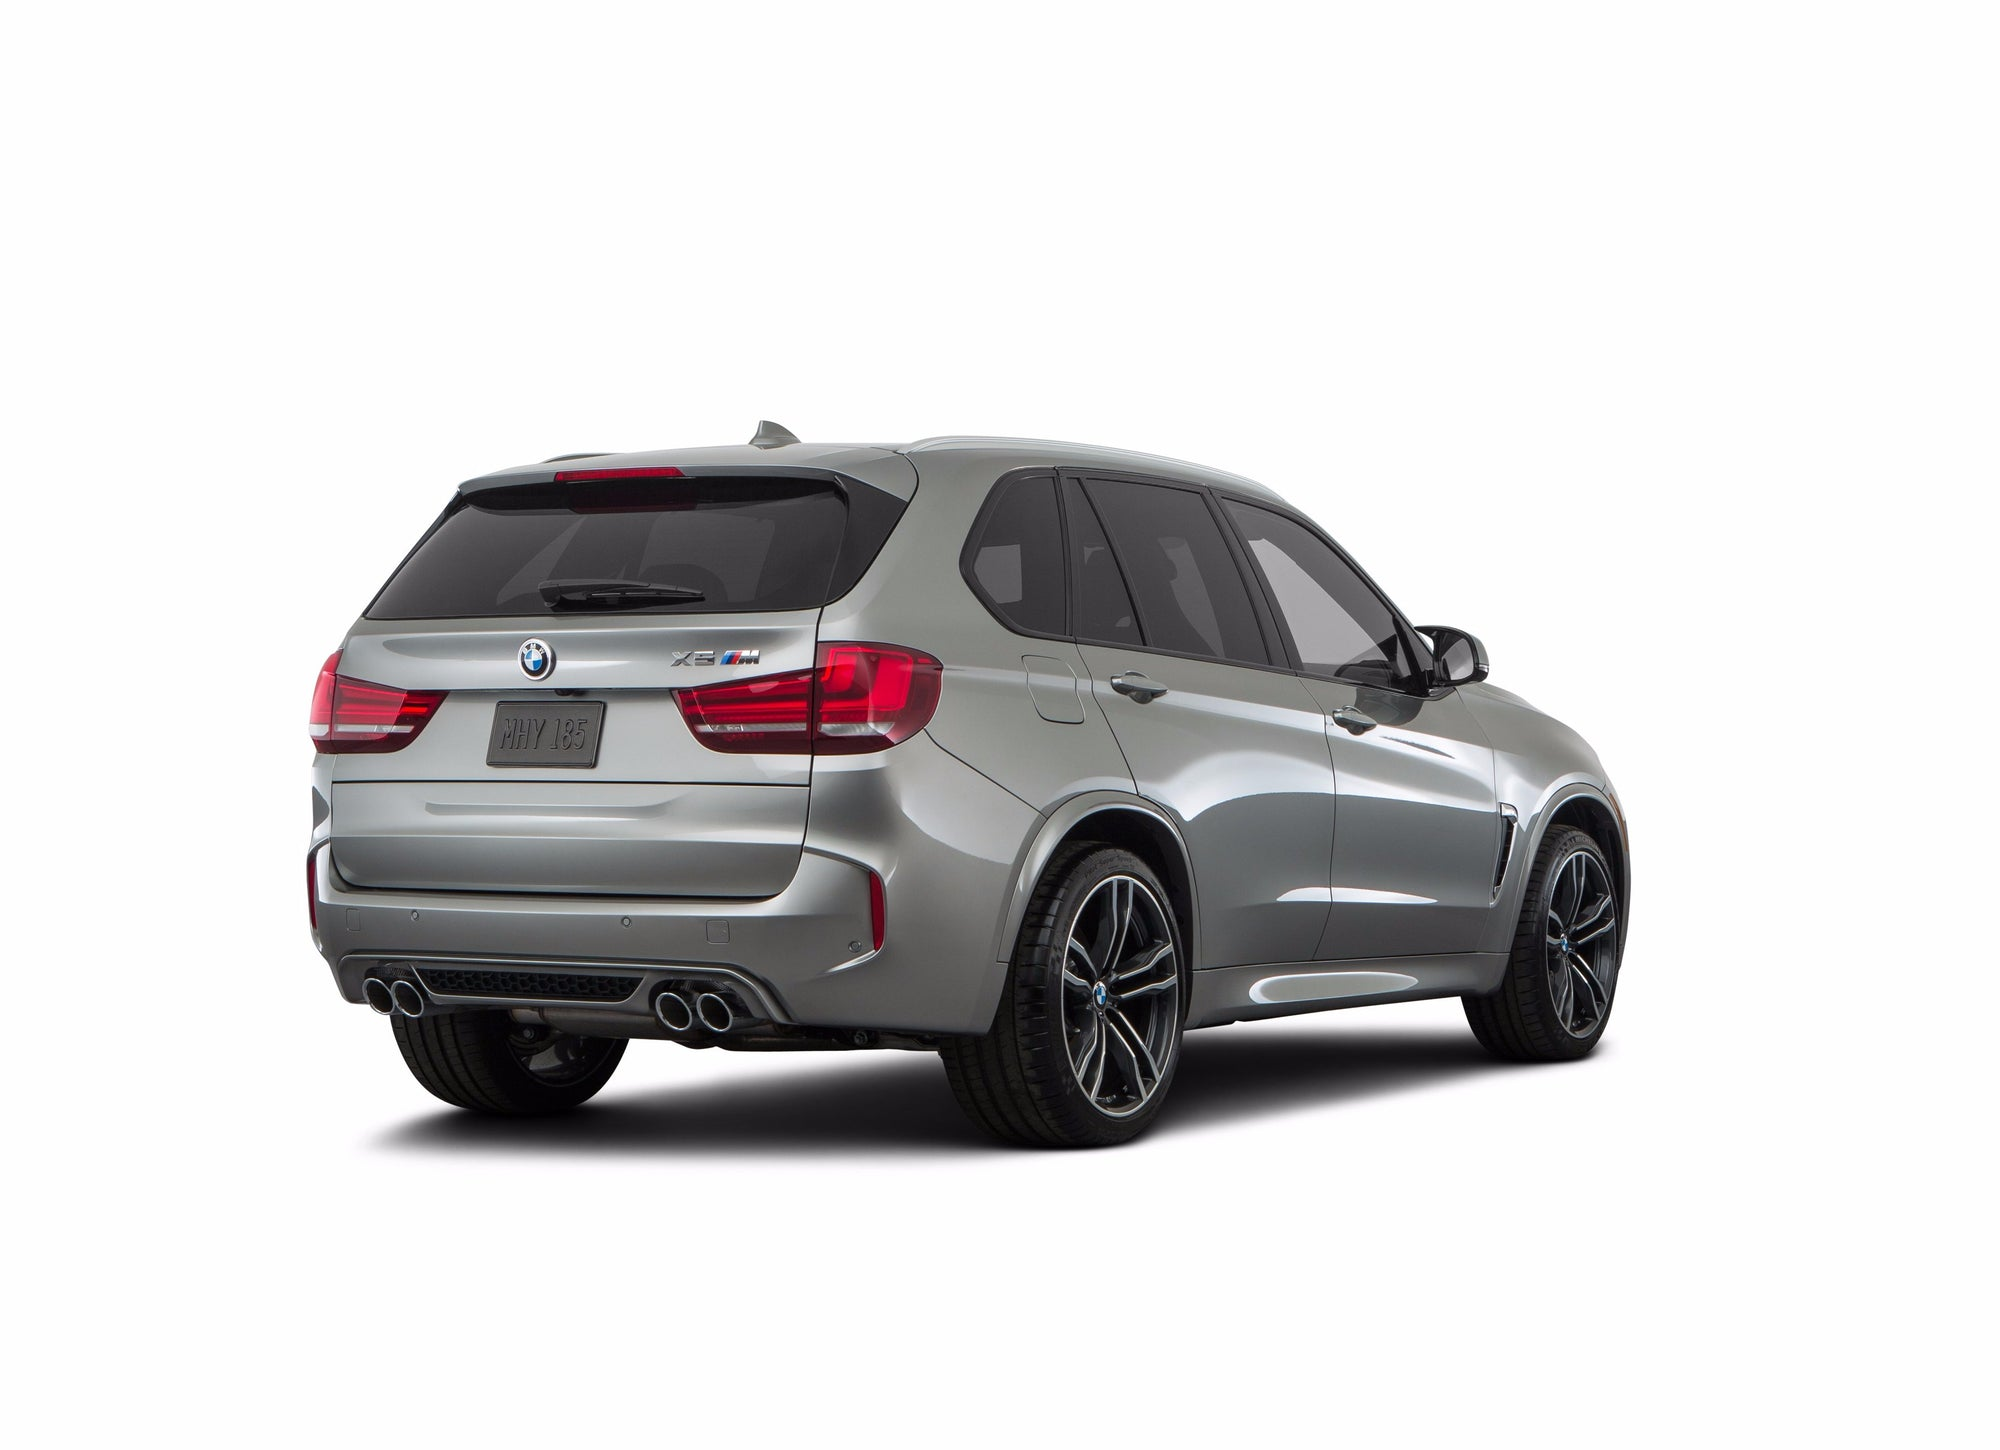 2012 Bmw X5 Trailer Wiring Harness Start Building A Diagram Hitch Made To Be Hidden Increase Tow Capacity Rh Stealthhitches Com E70 Tail Light Chevy Silverado